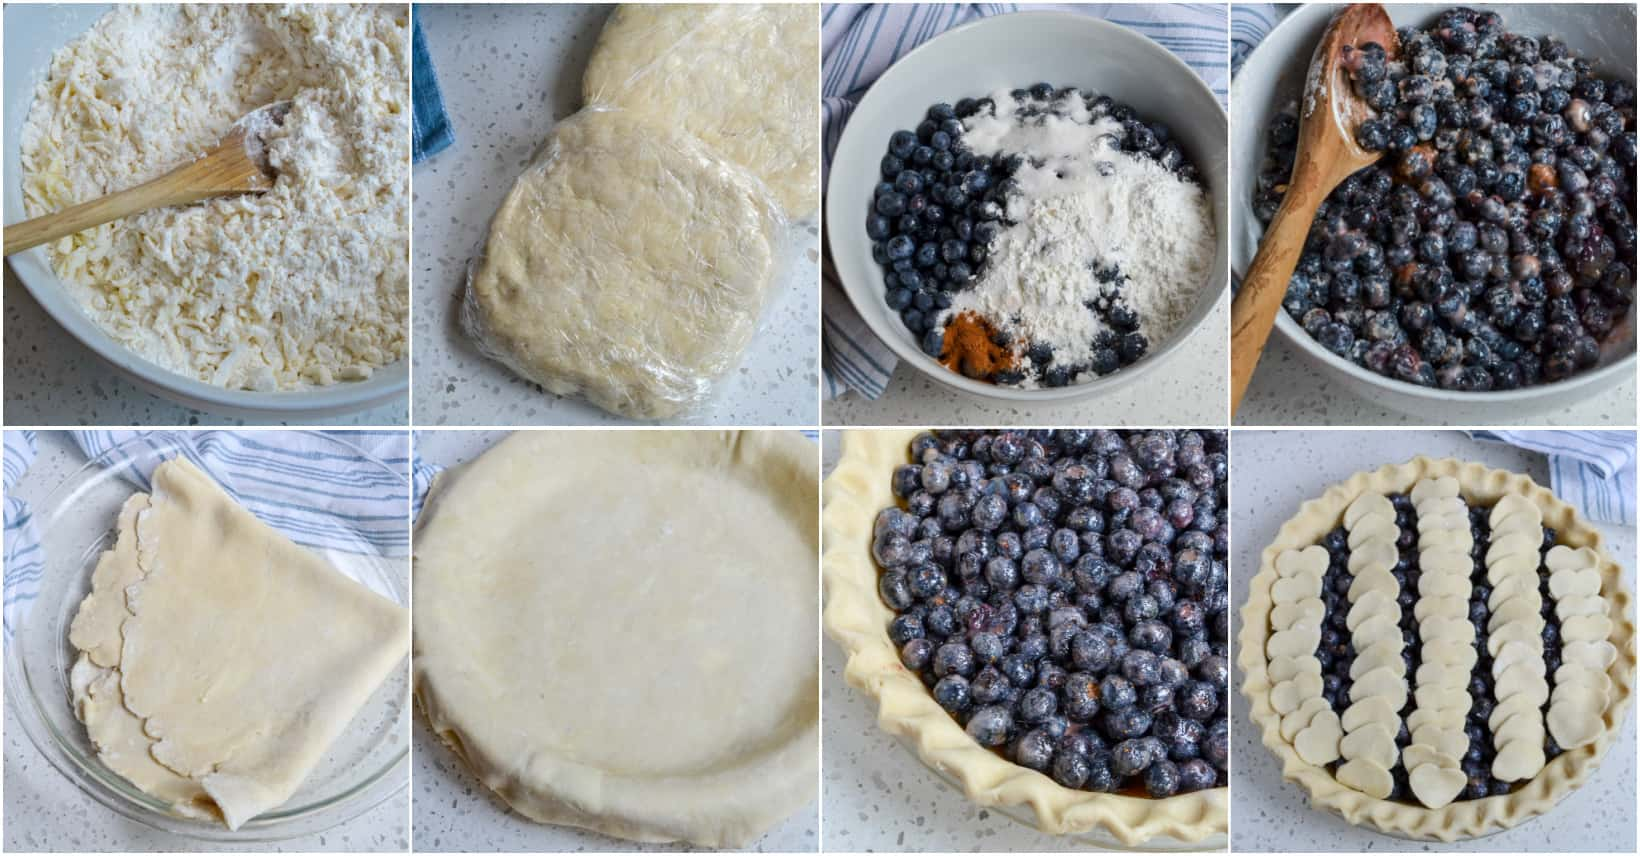 The steps to making a blueberry pie